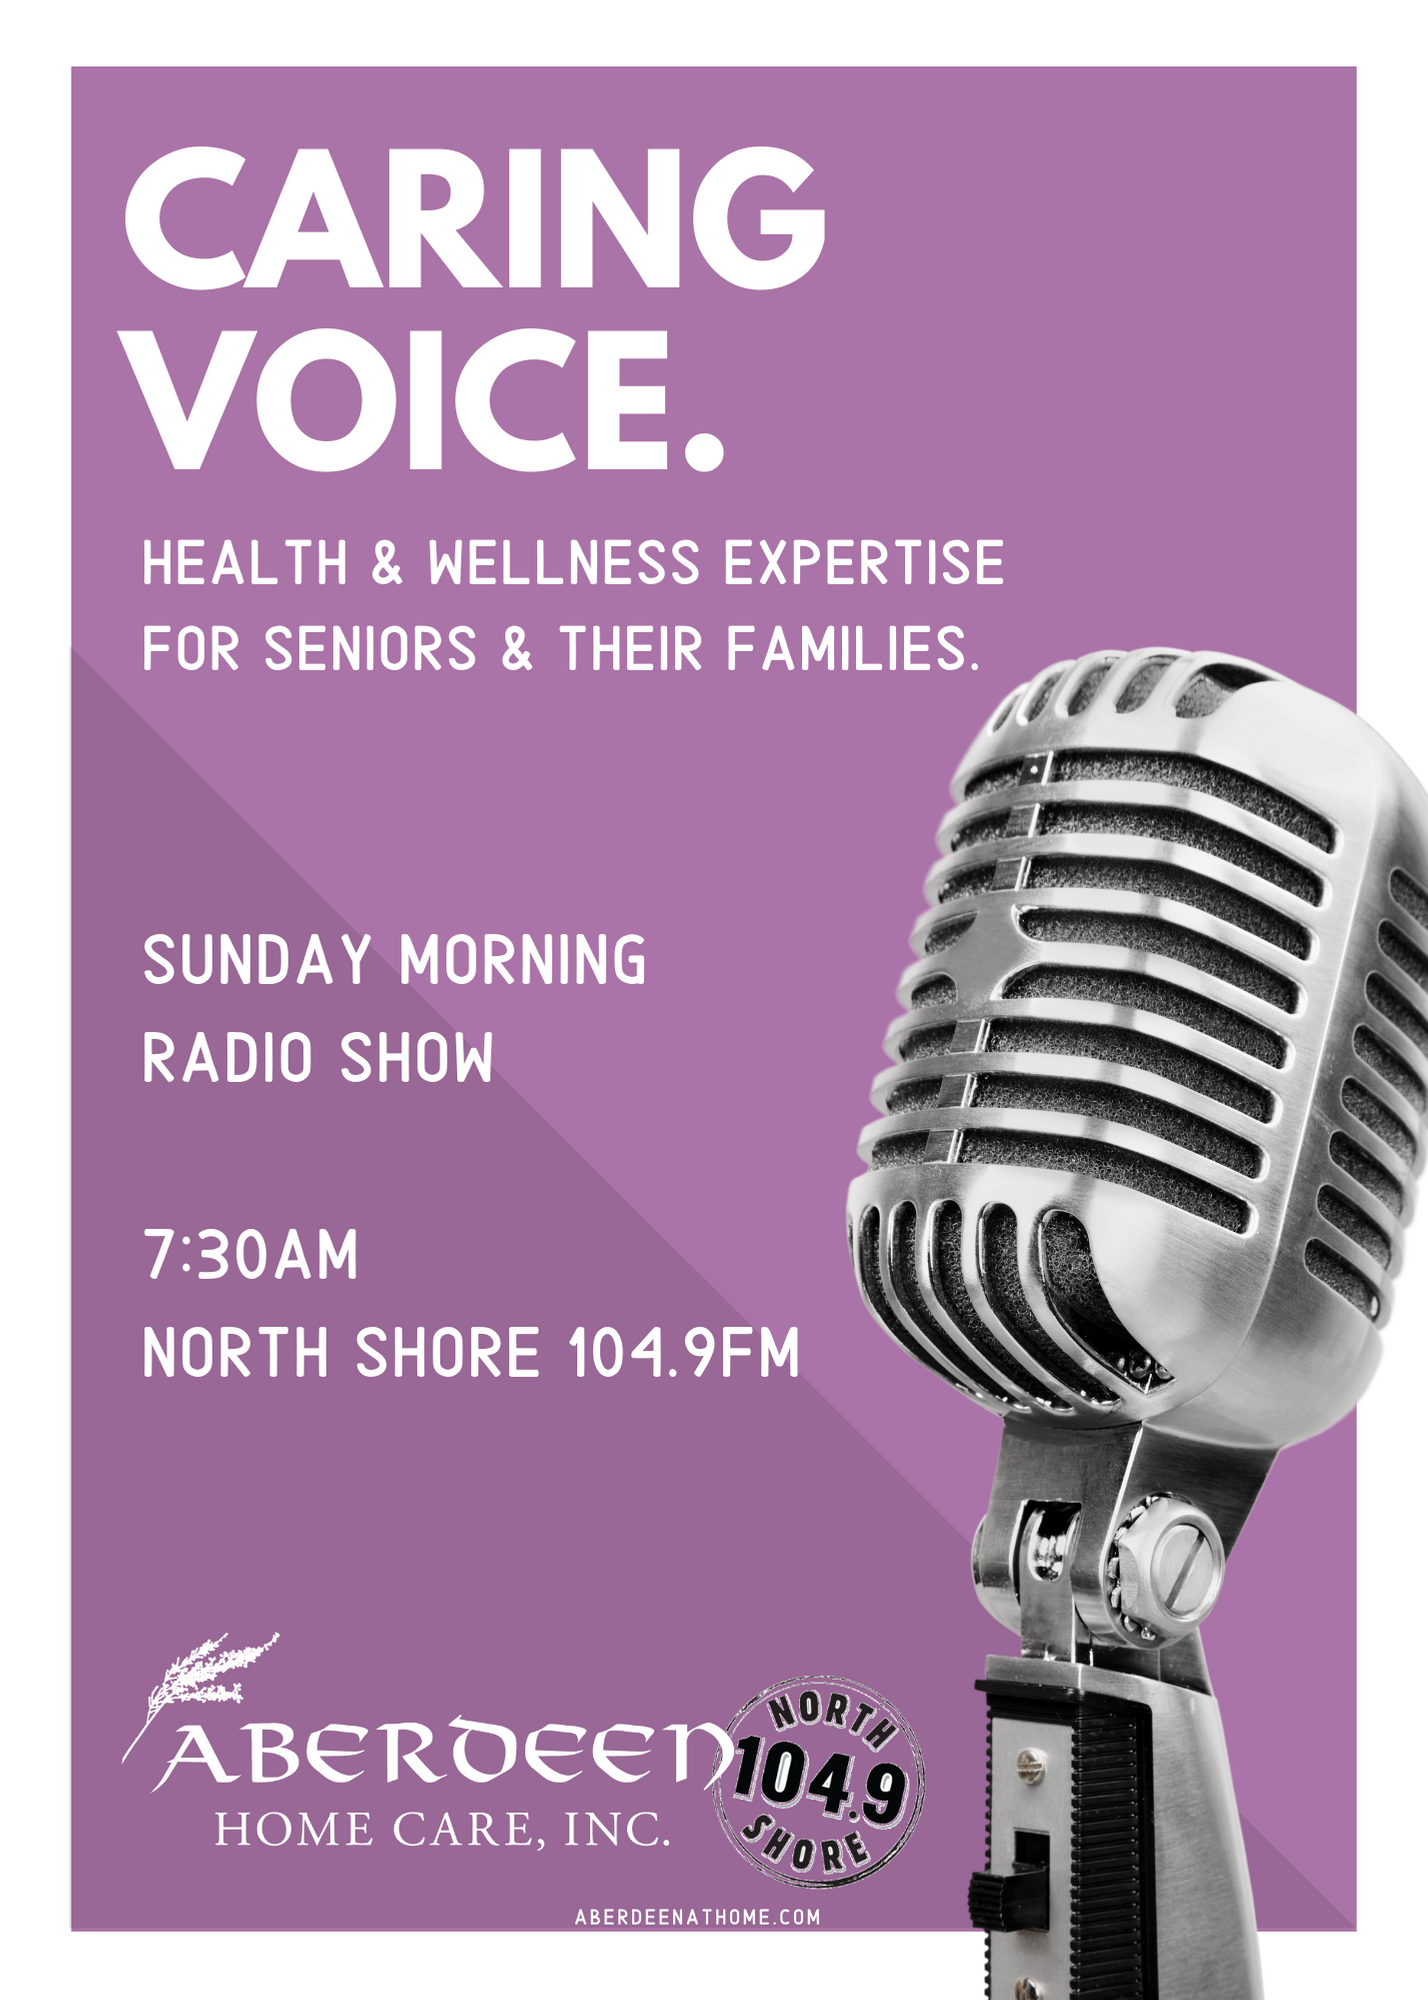 Sunday Mornings on North Shore 104.9FM